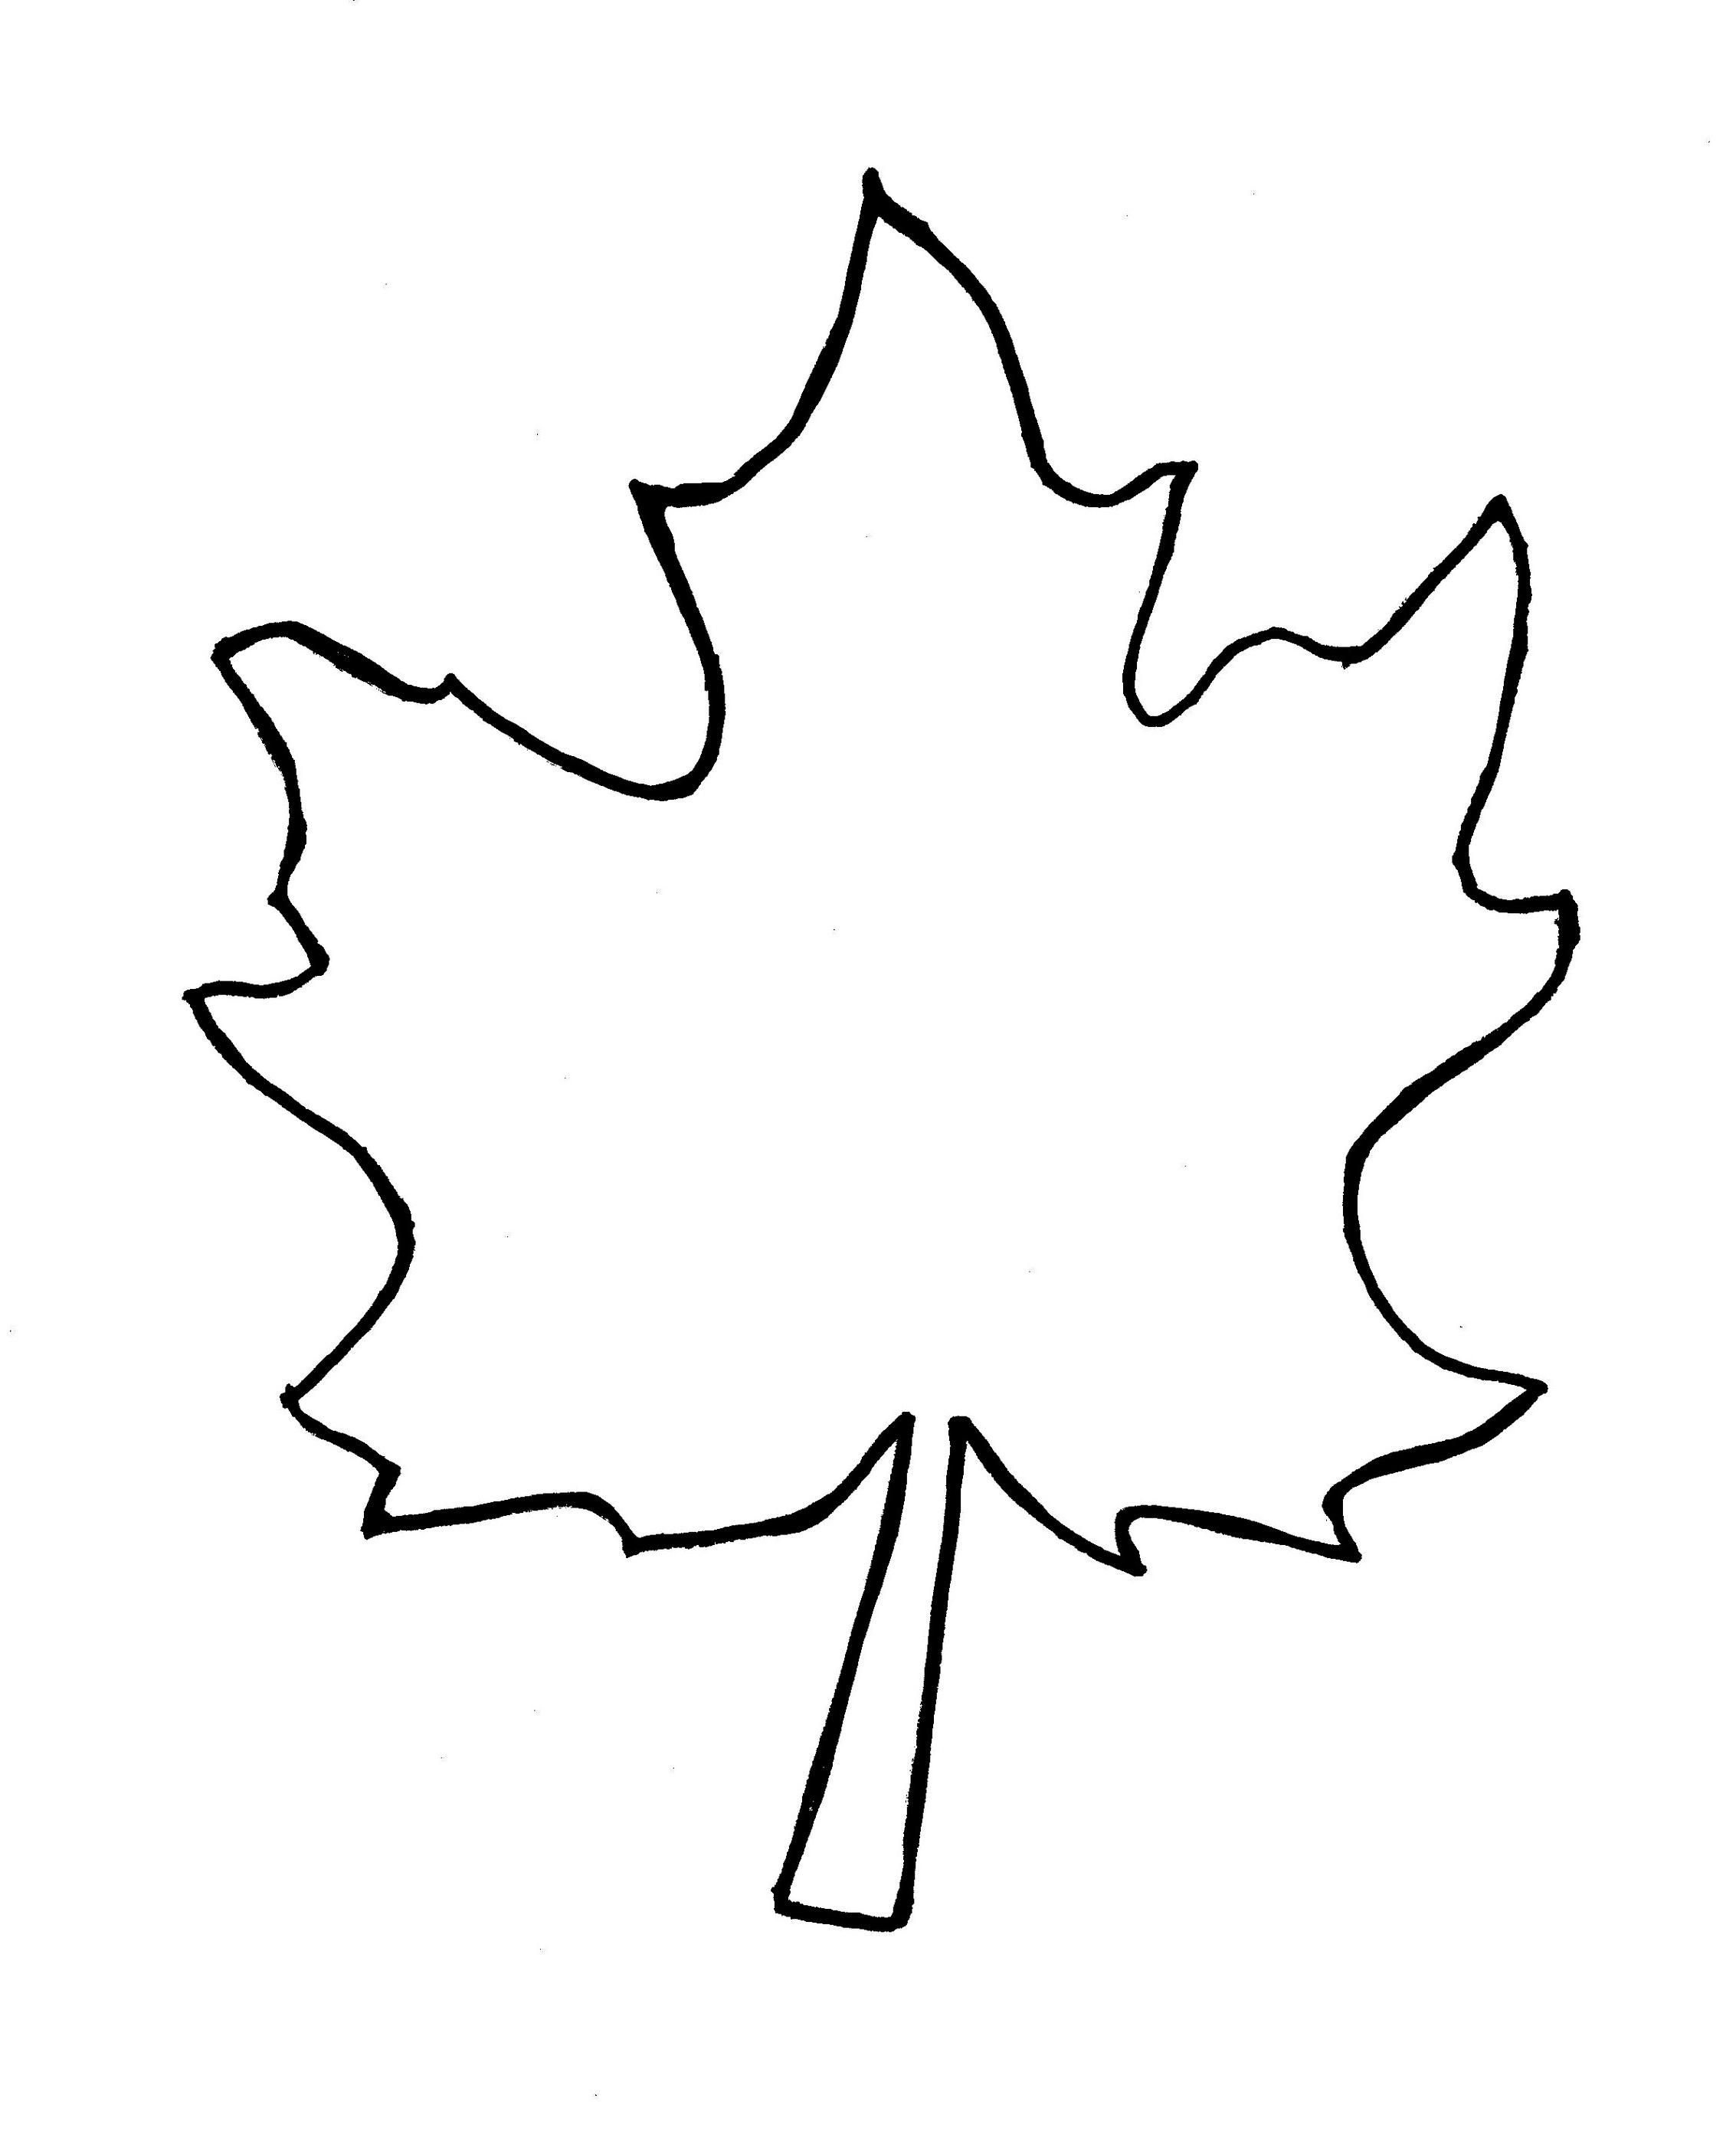 Leaf Clipart Black And White Outline.